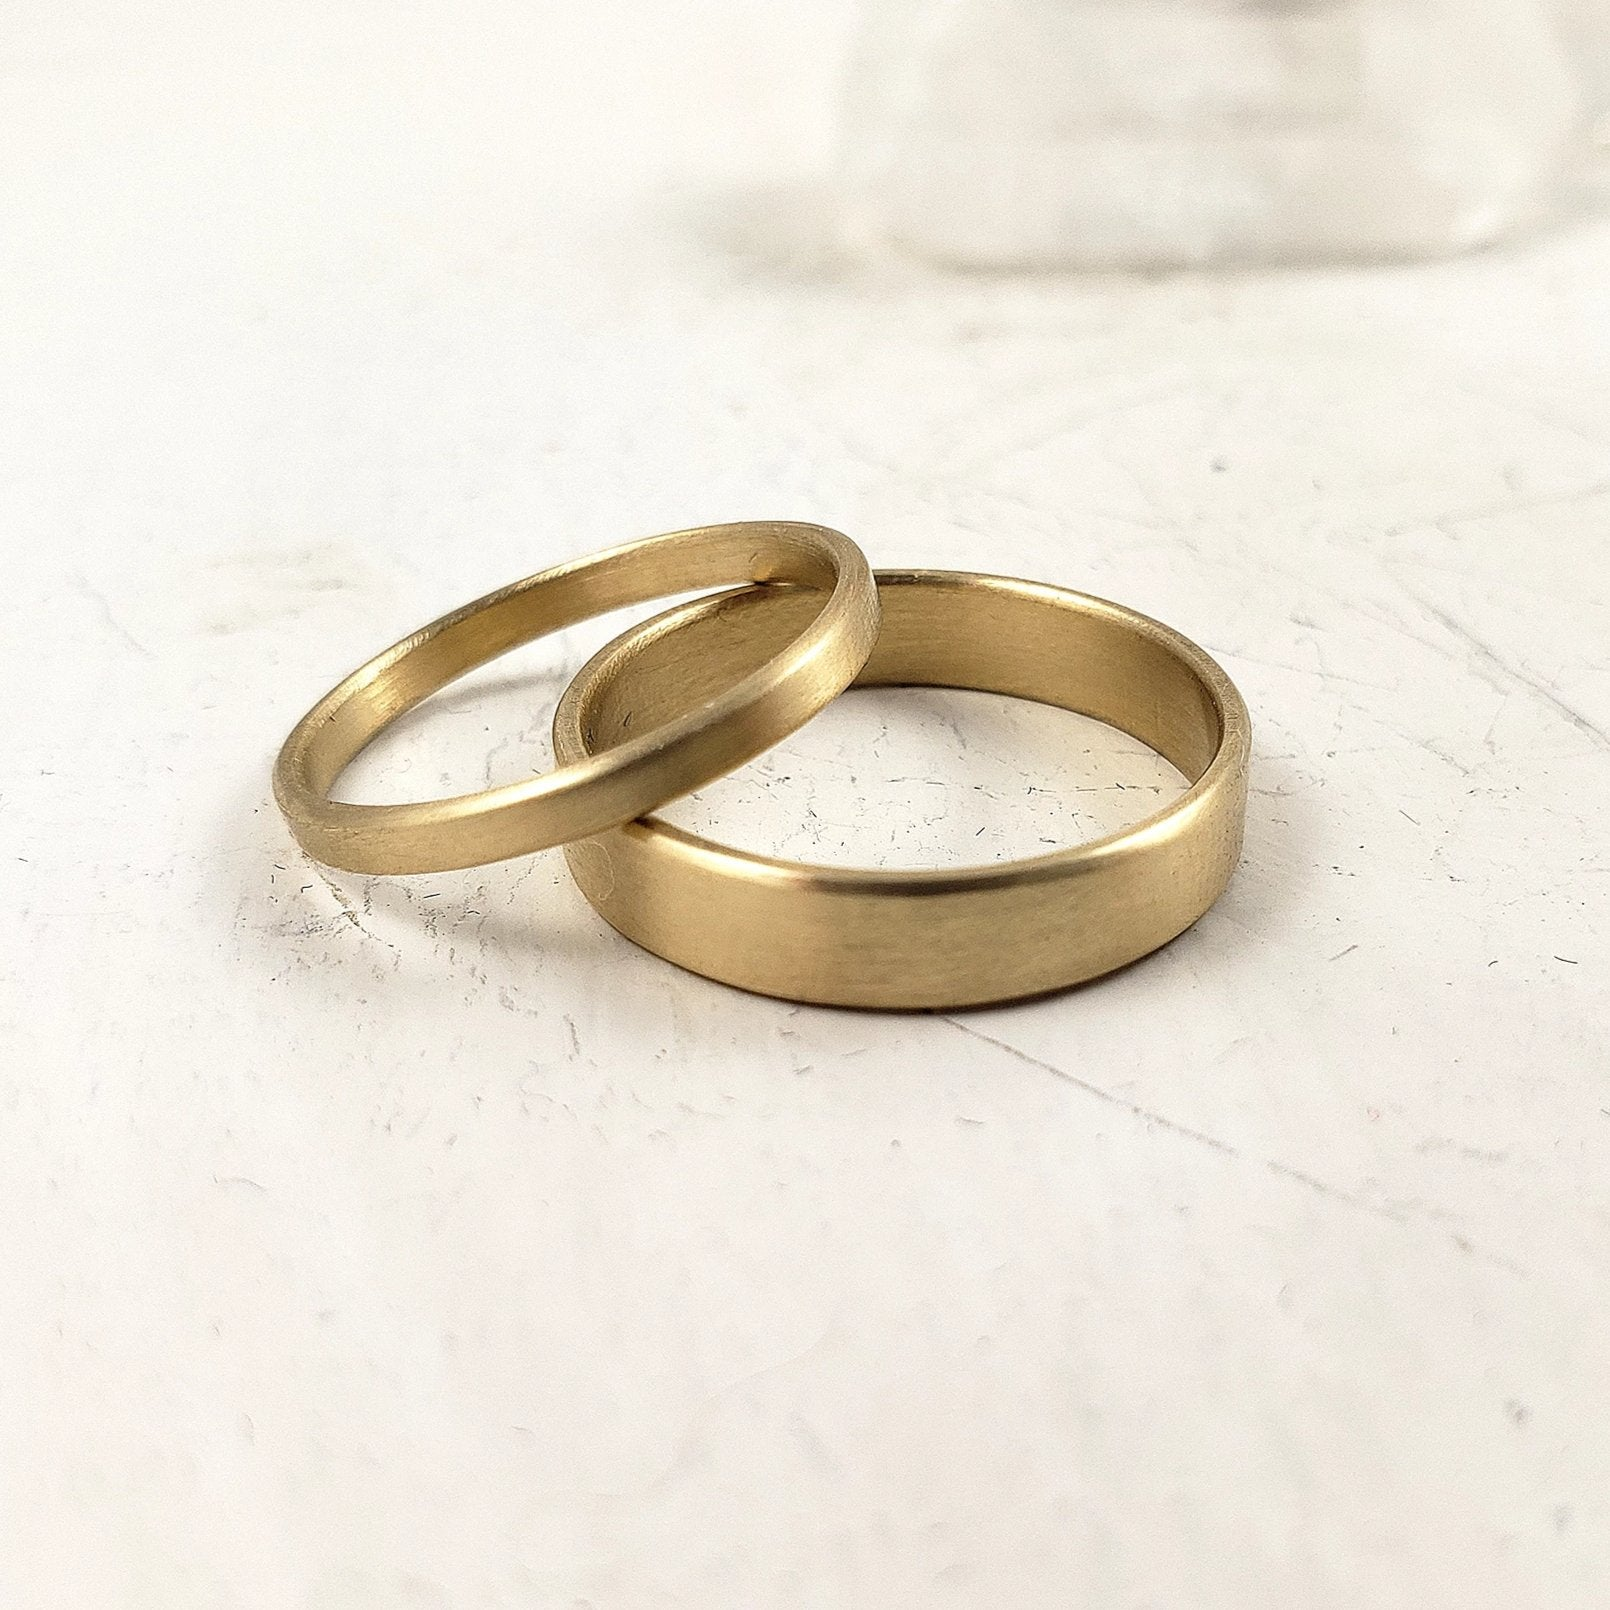 Set of solid gold wedding bands, 10k, 14k and 18 k yellow gold